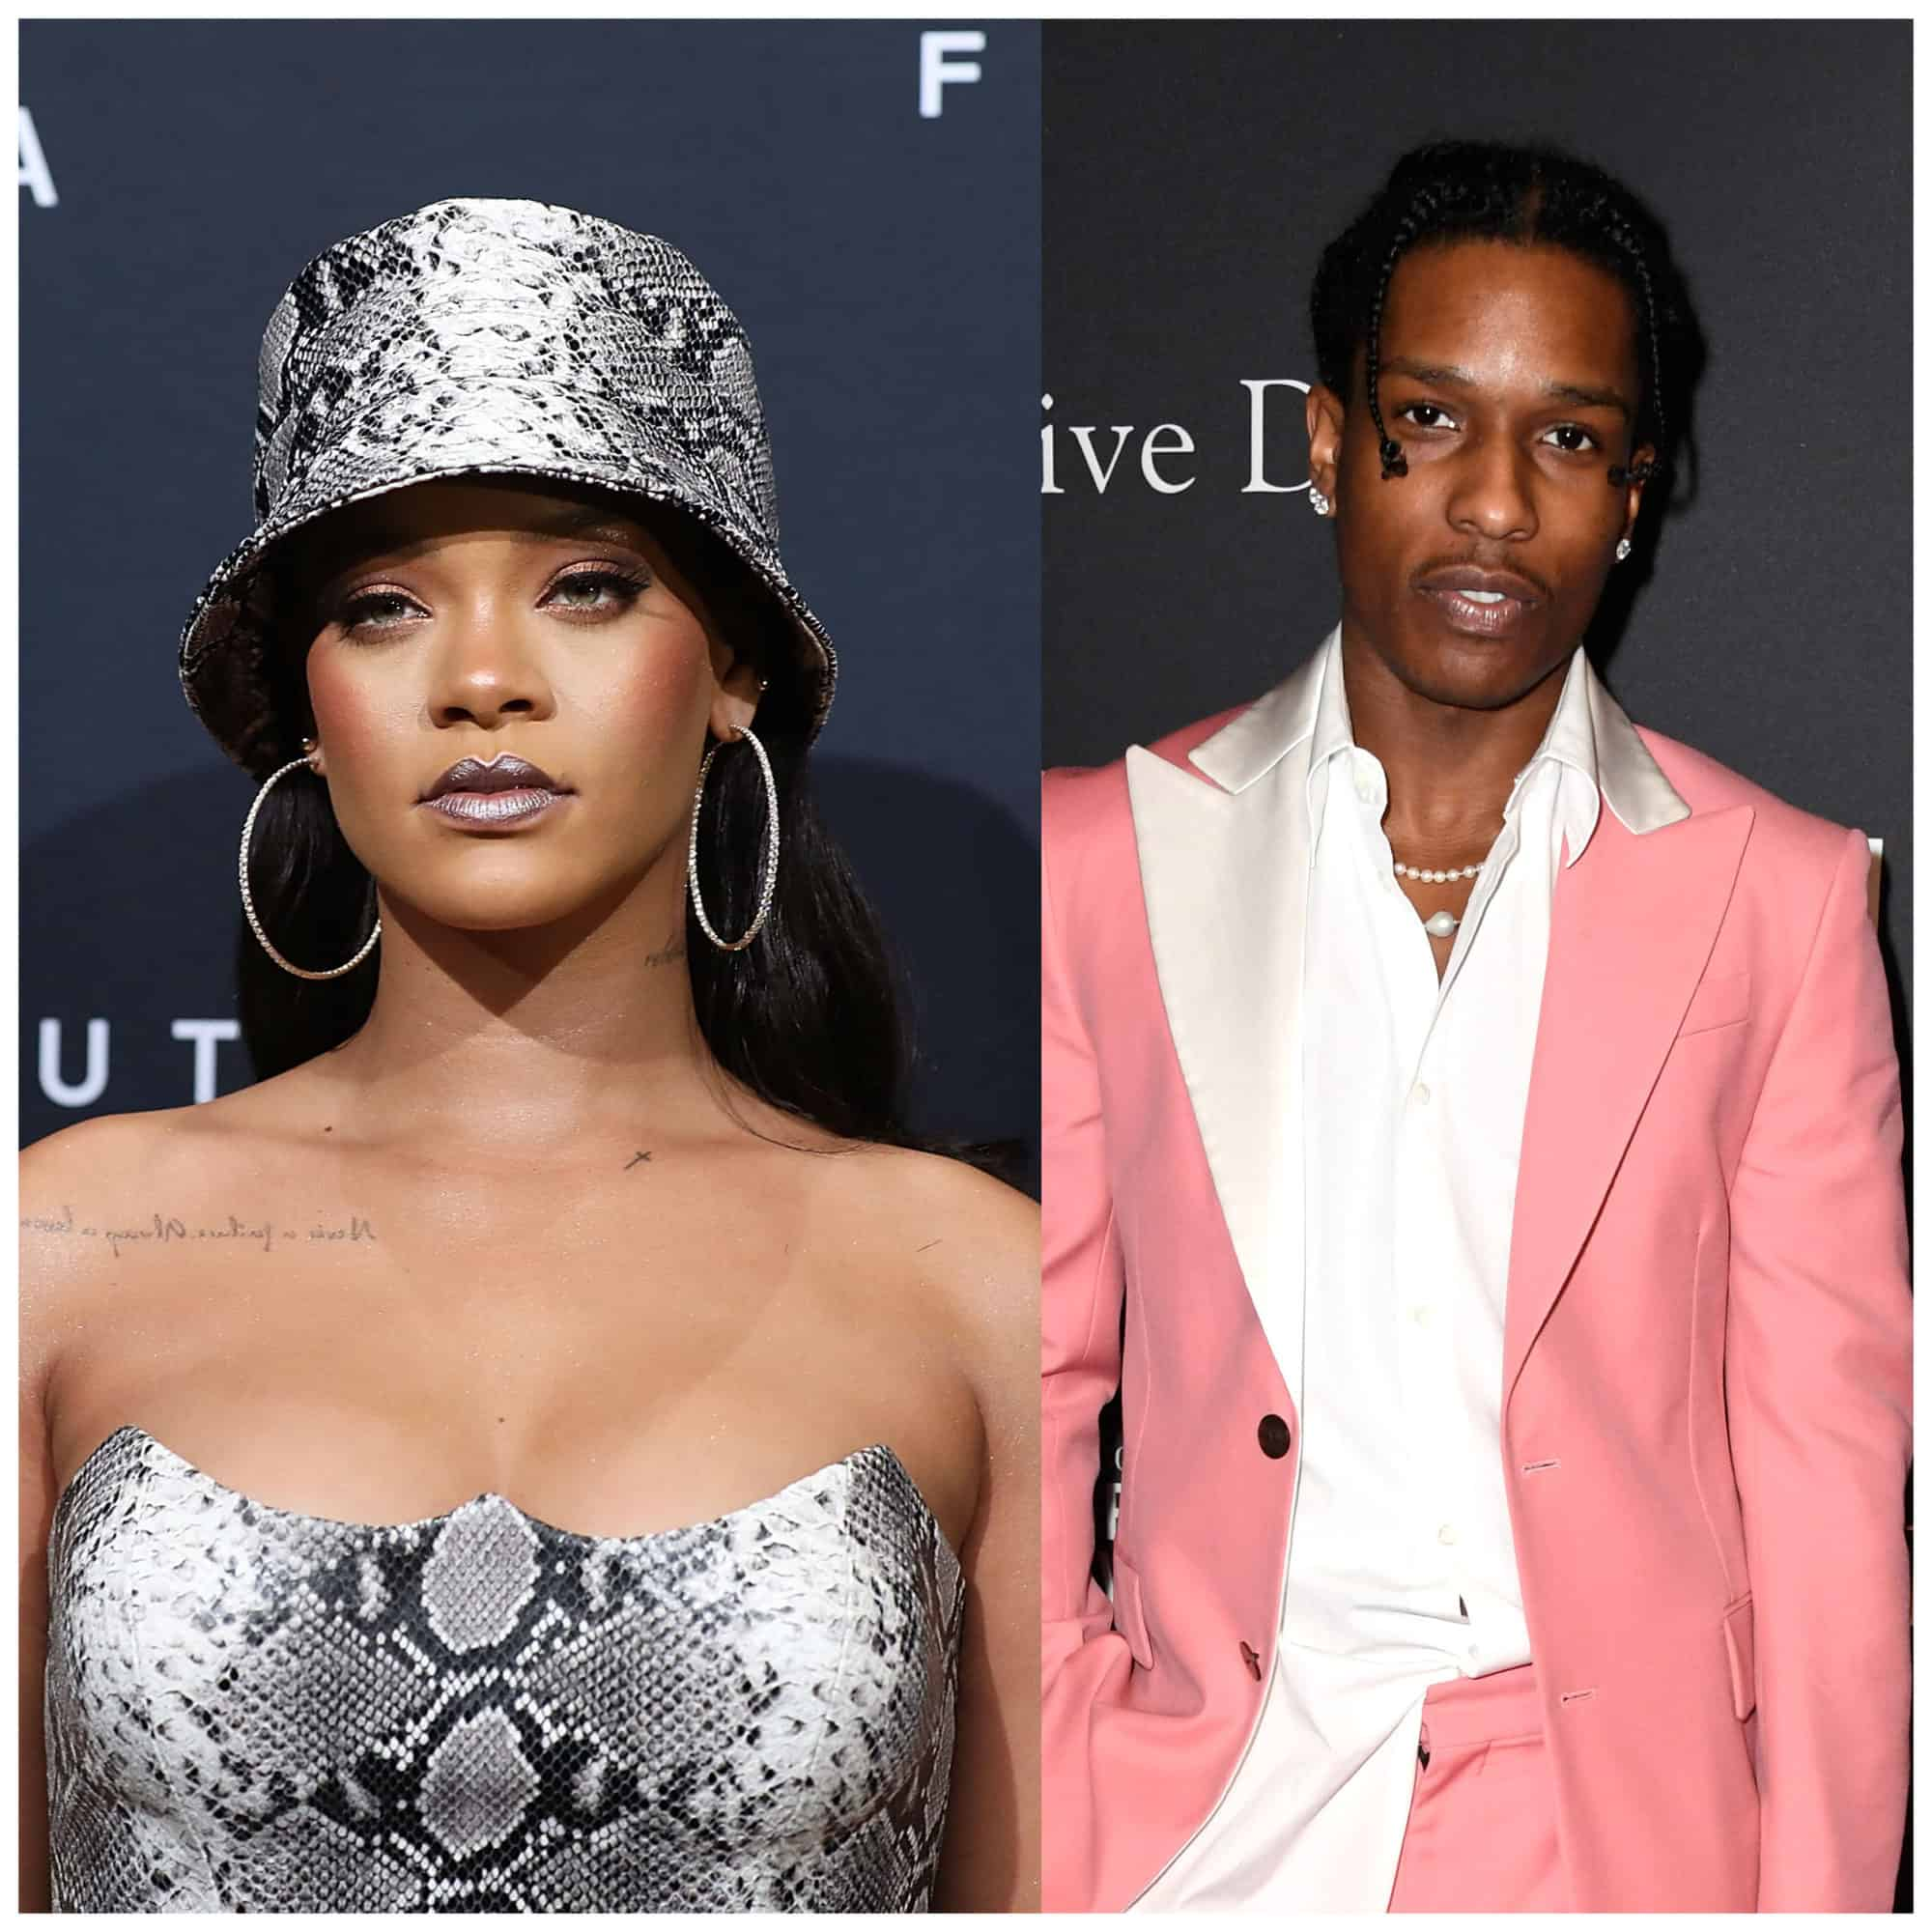 ASAP Rocky and Rihanna discovered holding hands in Barbados (images)